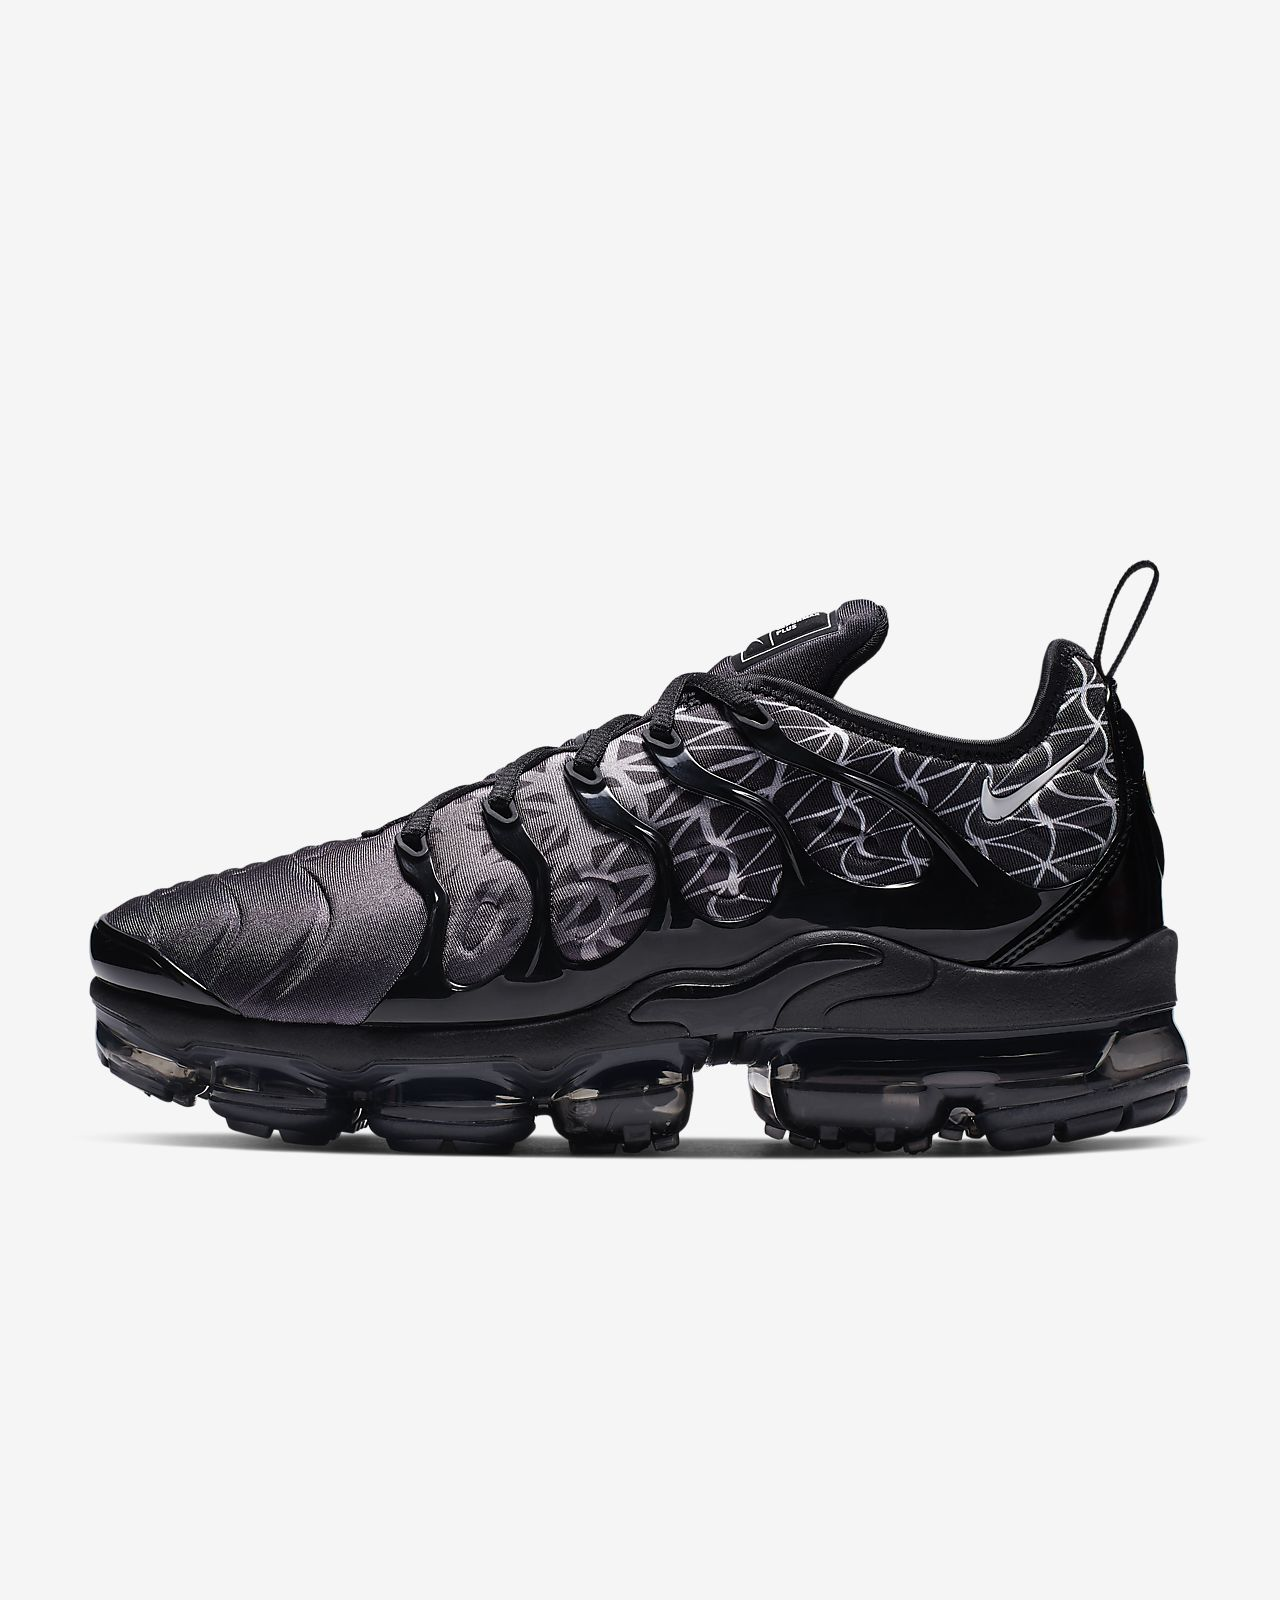 cbc936b47a Nike Air VaporMax Plus Men's Shoe. Nike.com CA